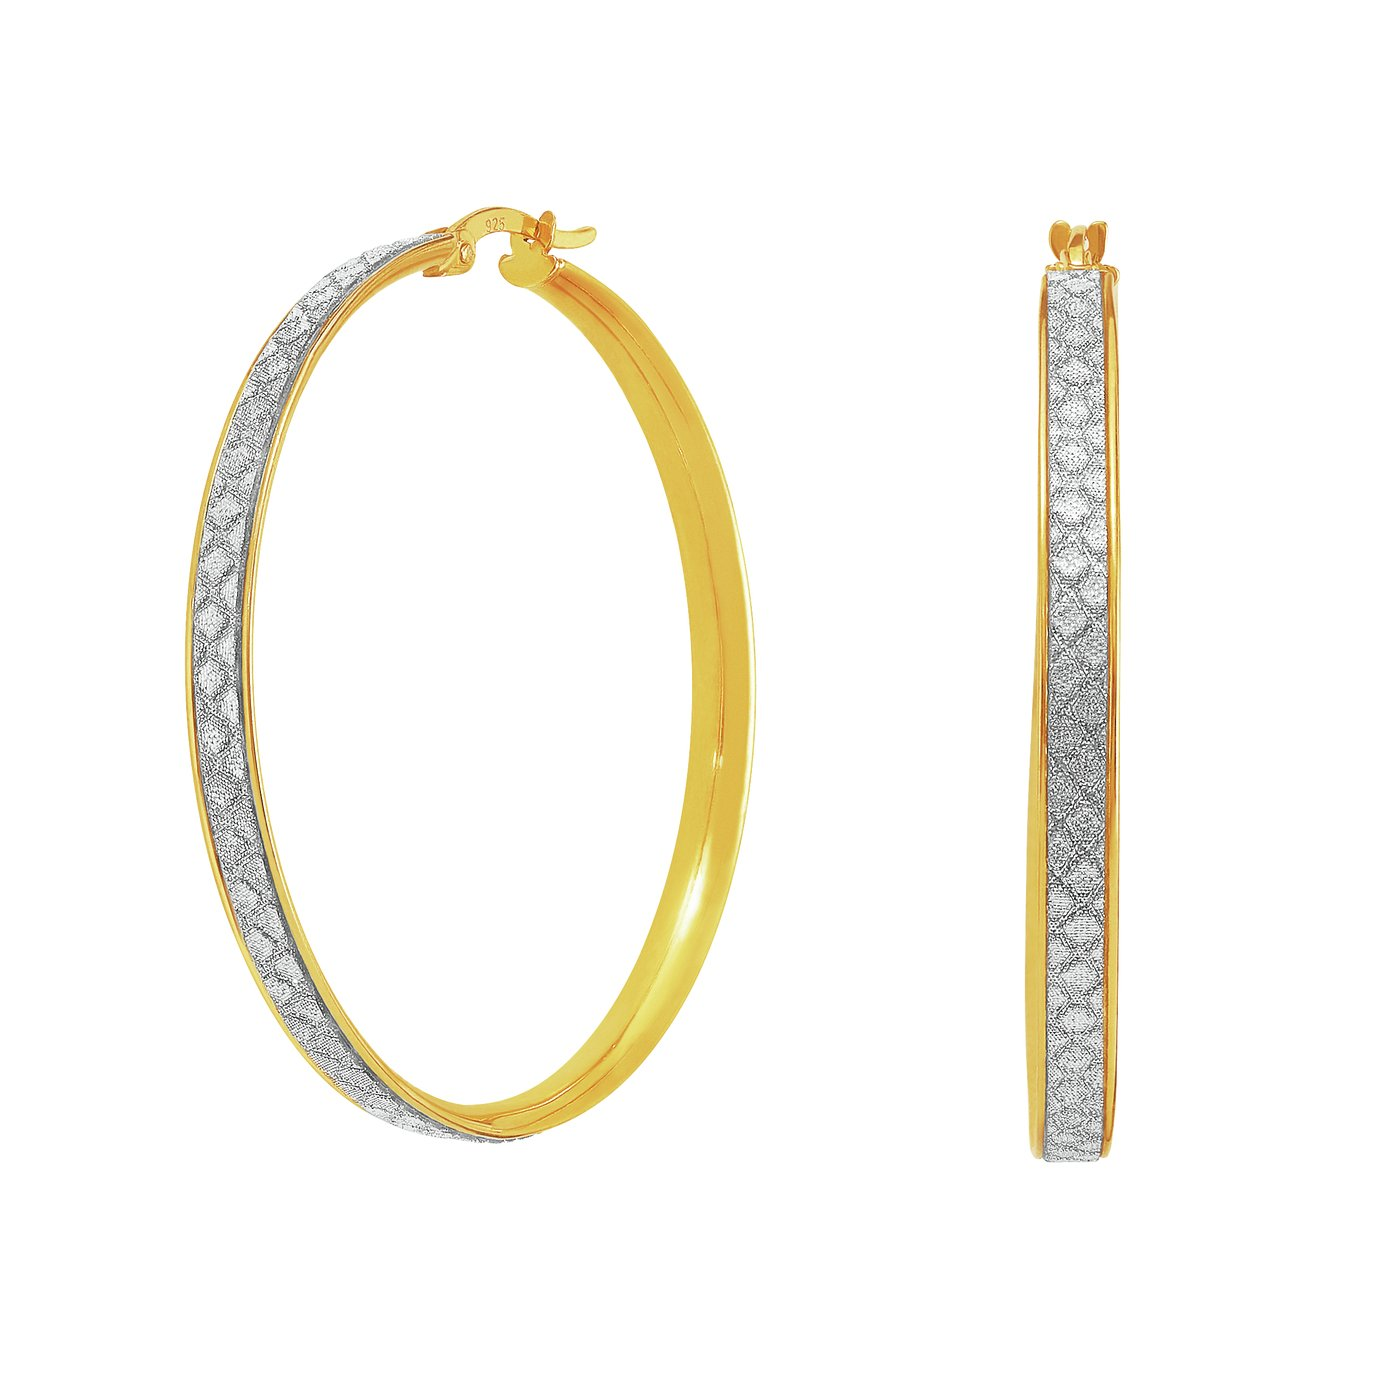 Revere 9ct Gold Plated Silver Glitter Hoop Earrings